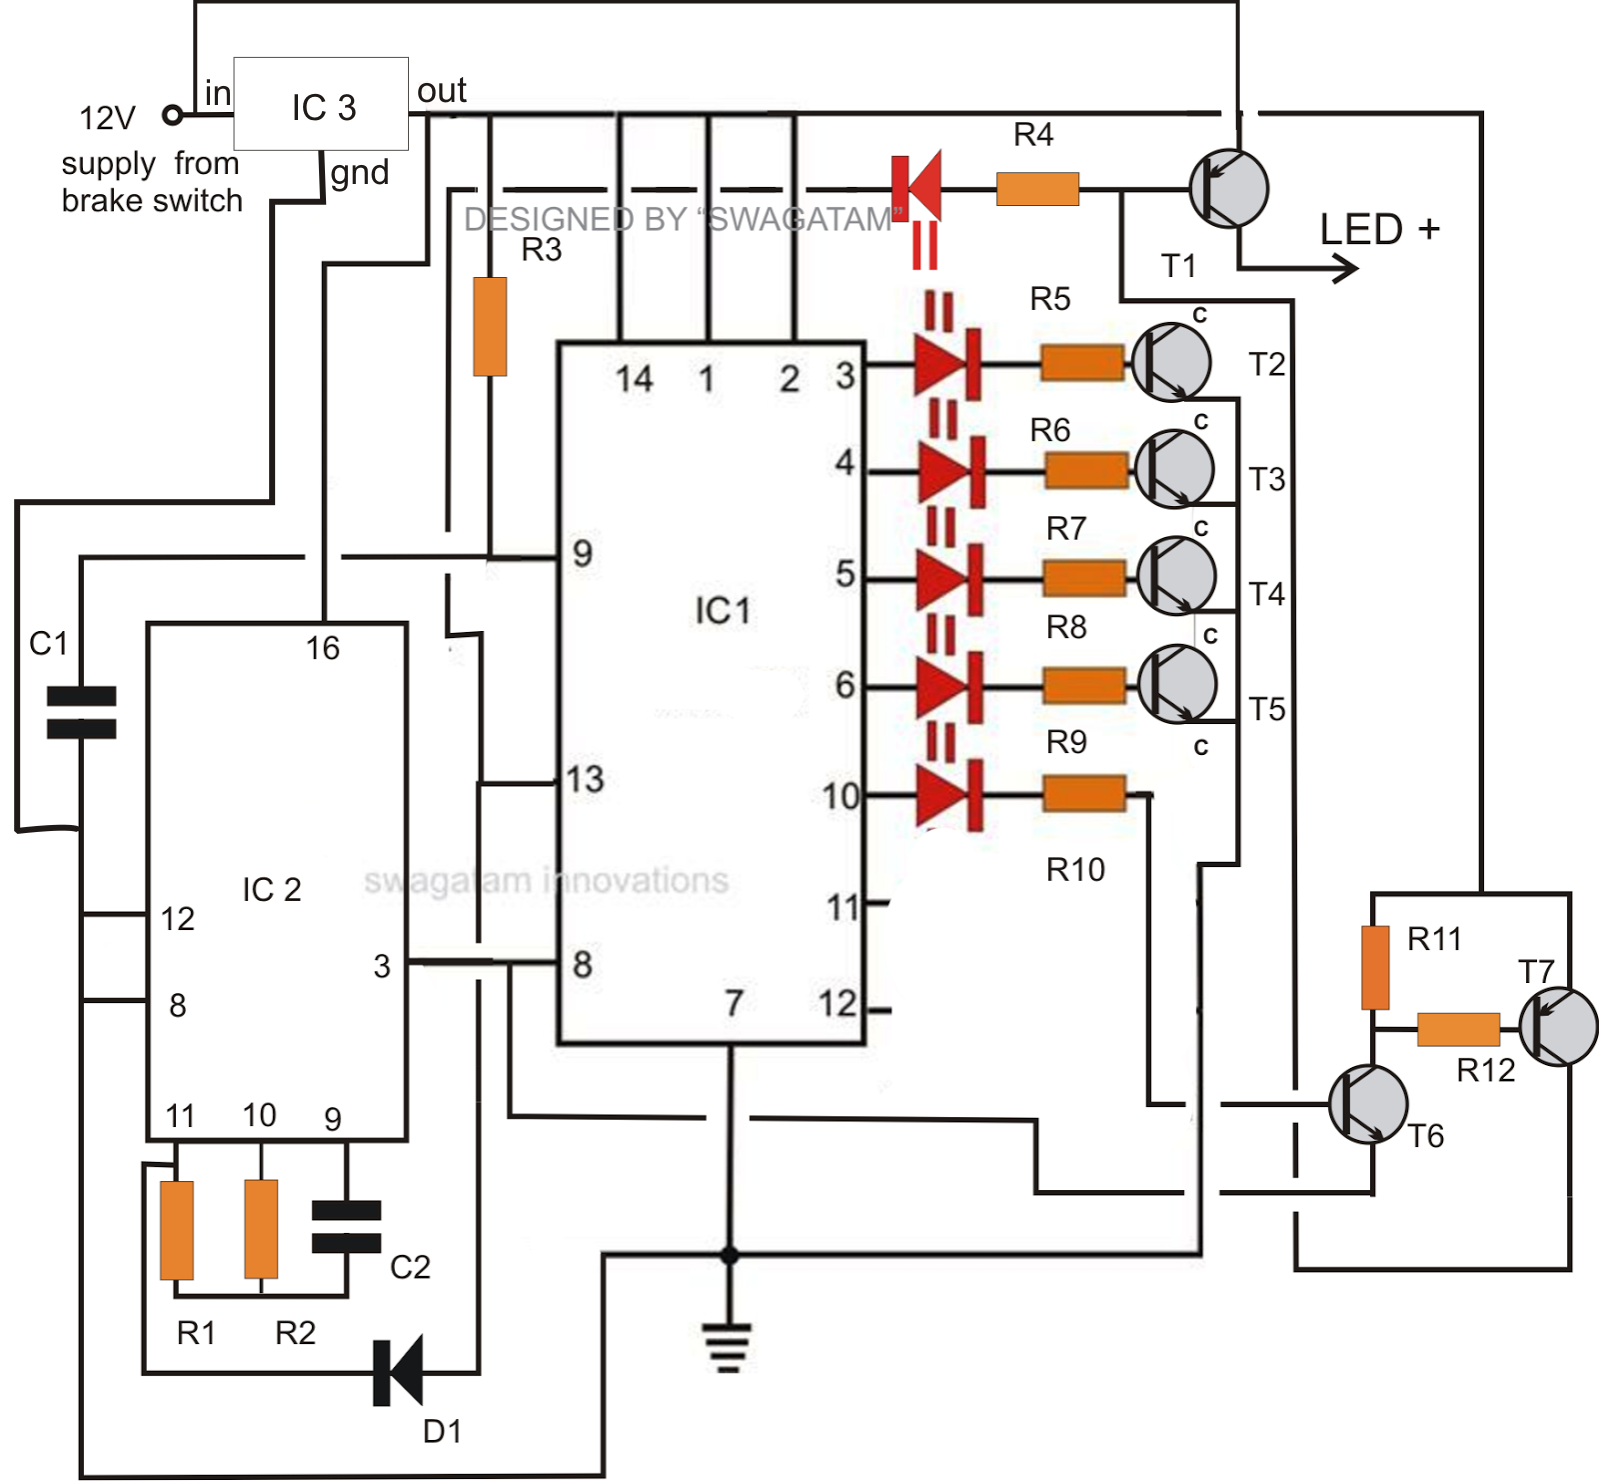 spyder led tail light wiring diagram